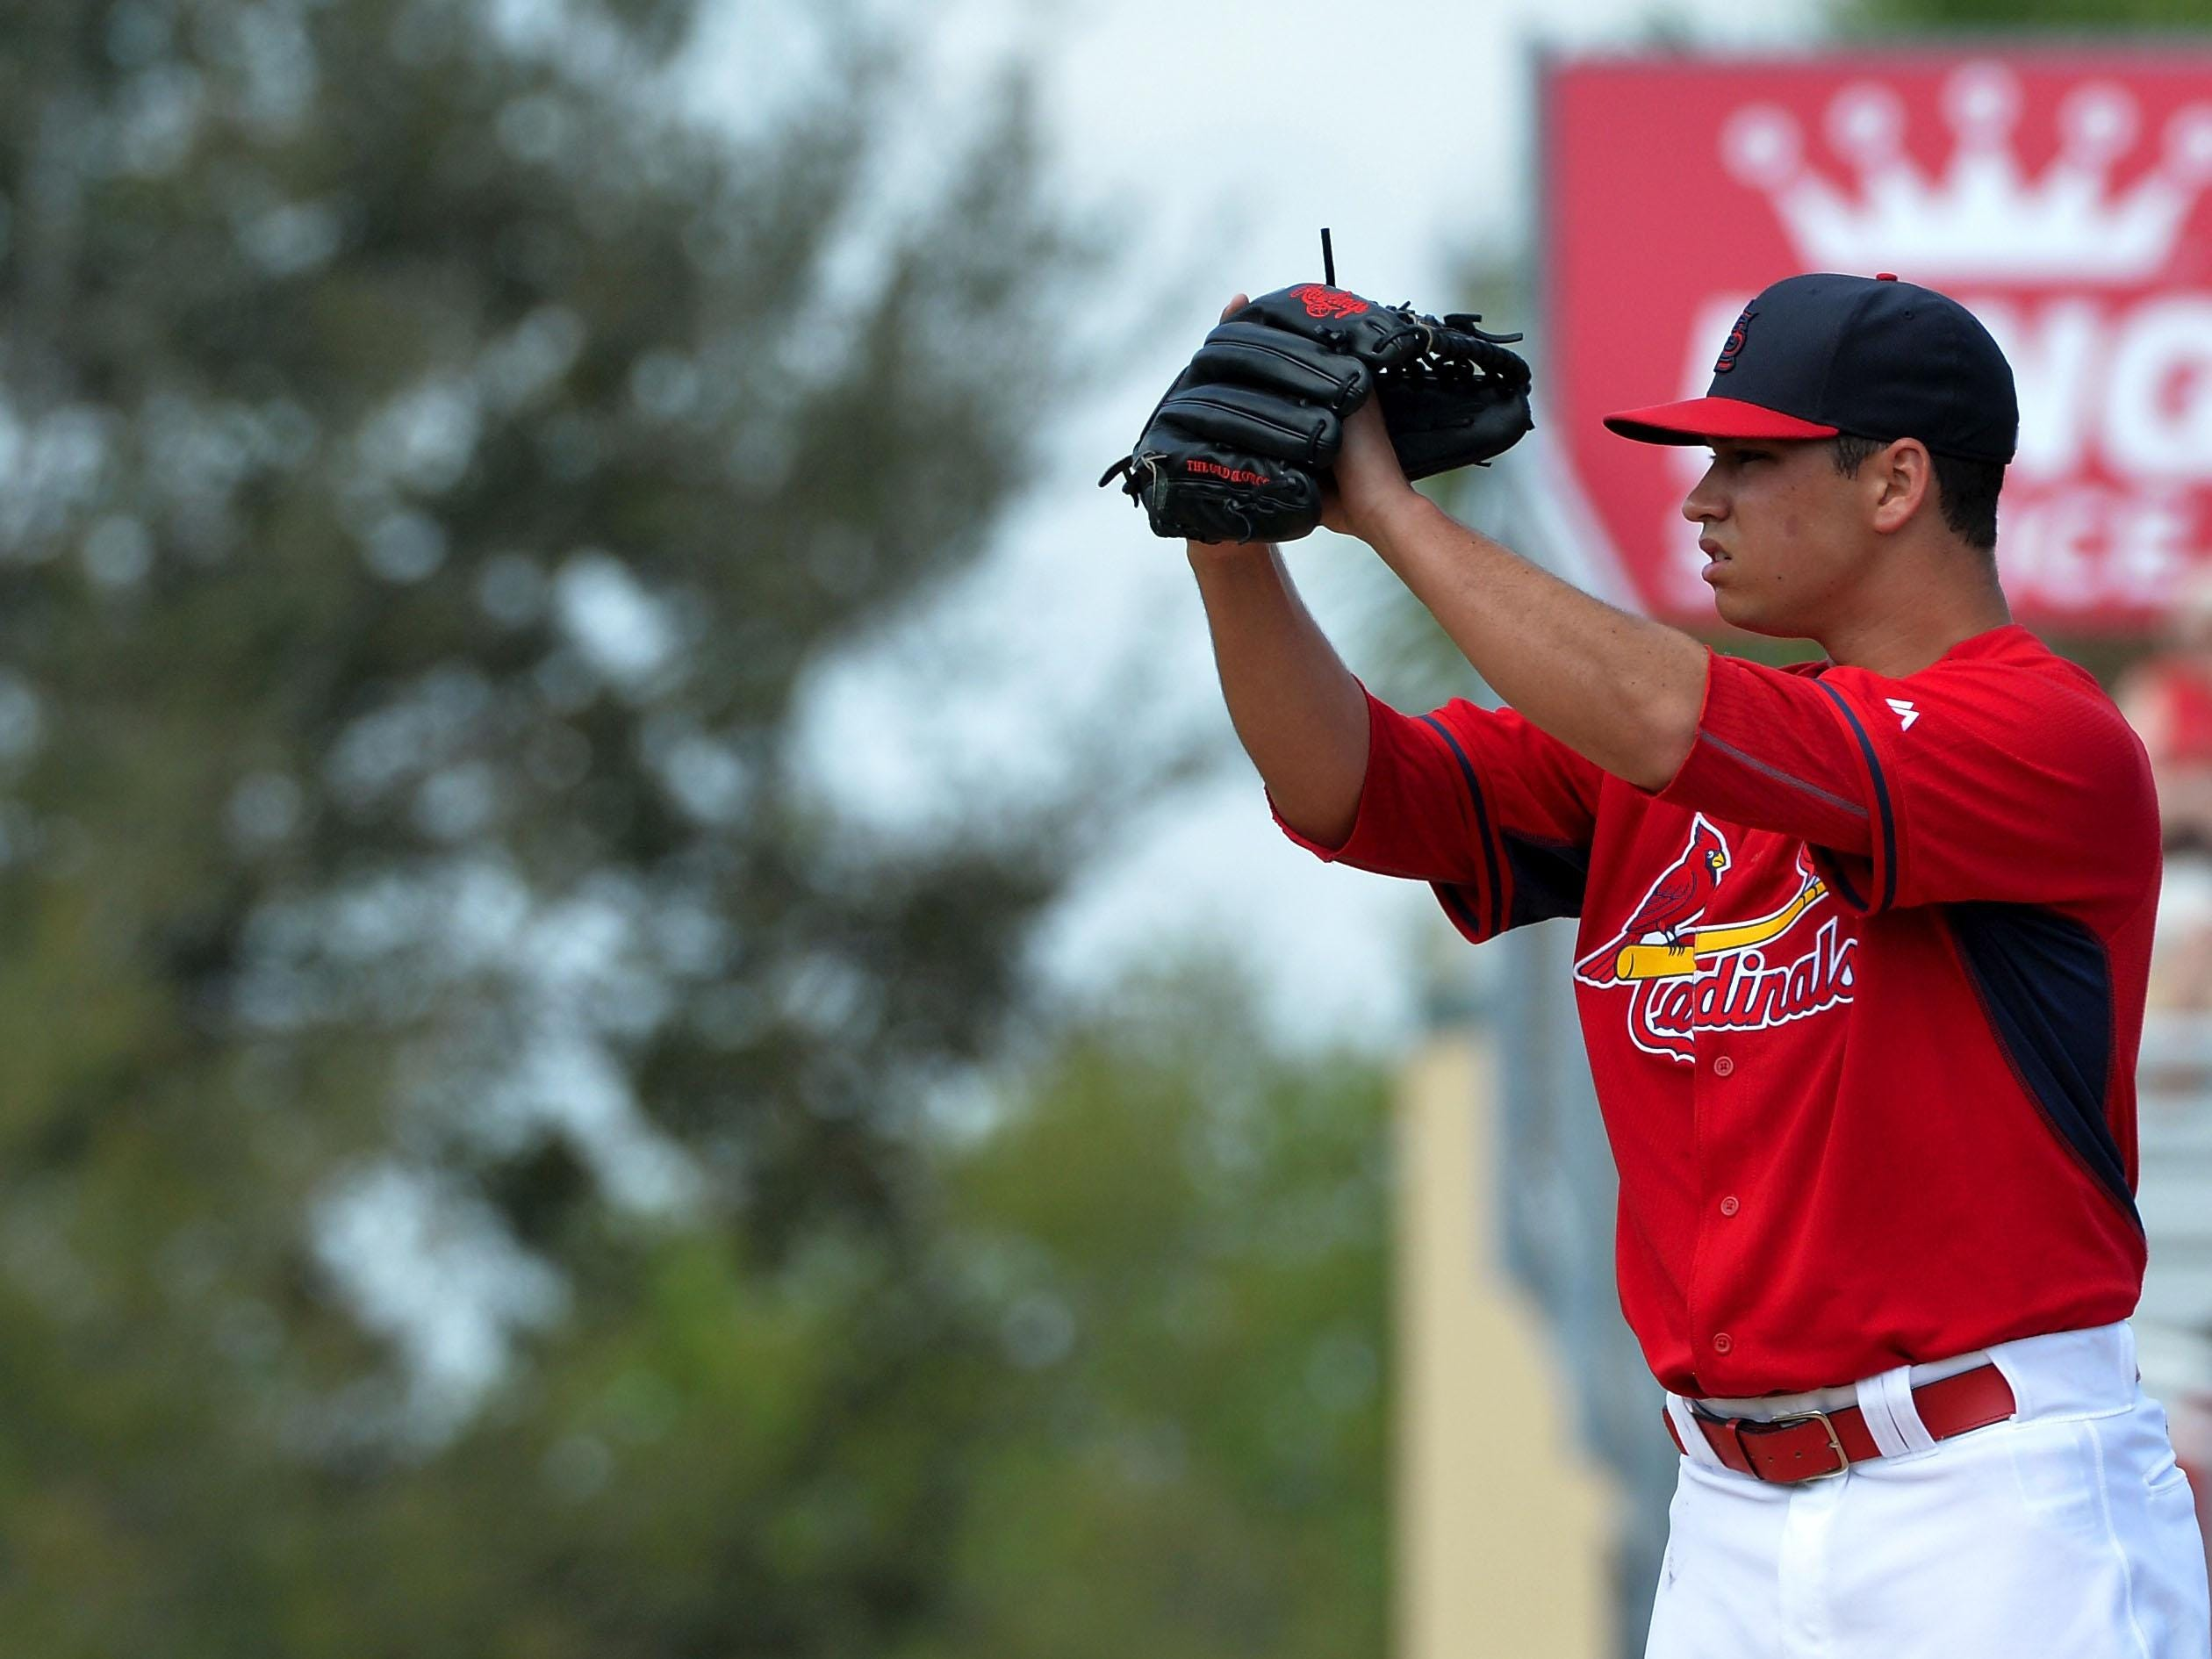 Former Rocky Mountain High School pitcher Marco Gonzales is set to return from injury in the St. Louis Cardinals organization this week.